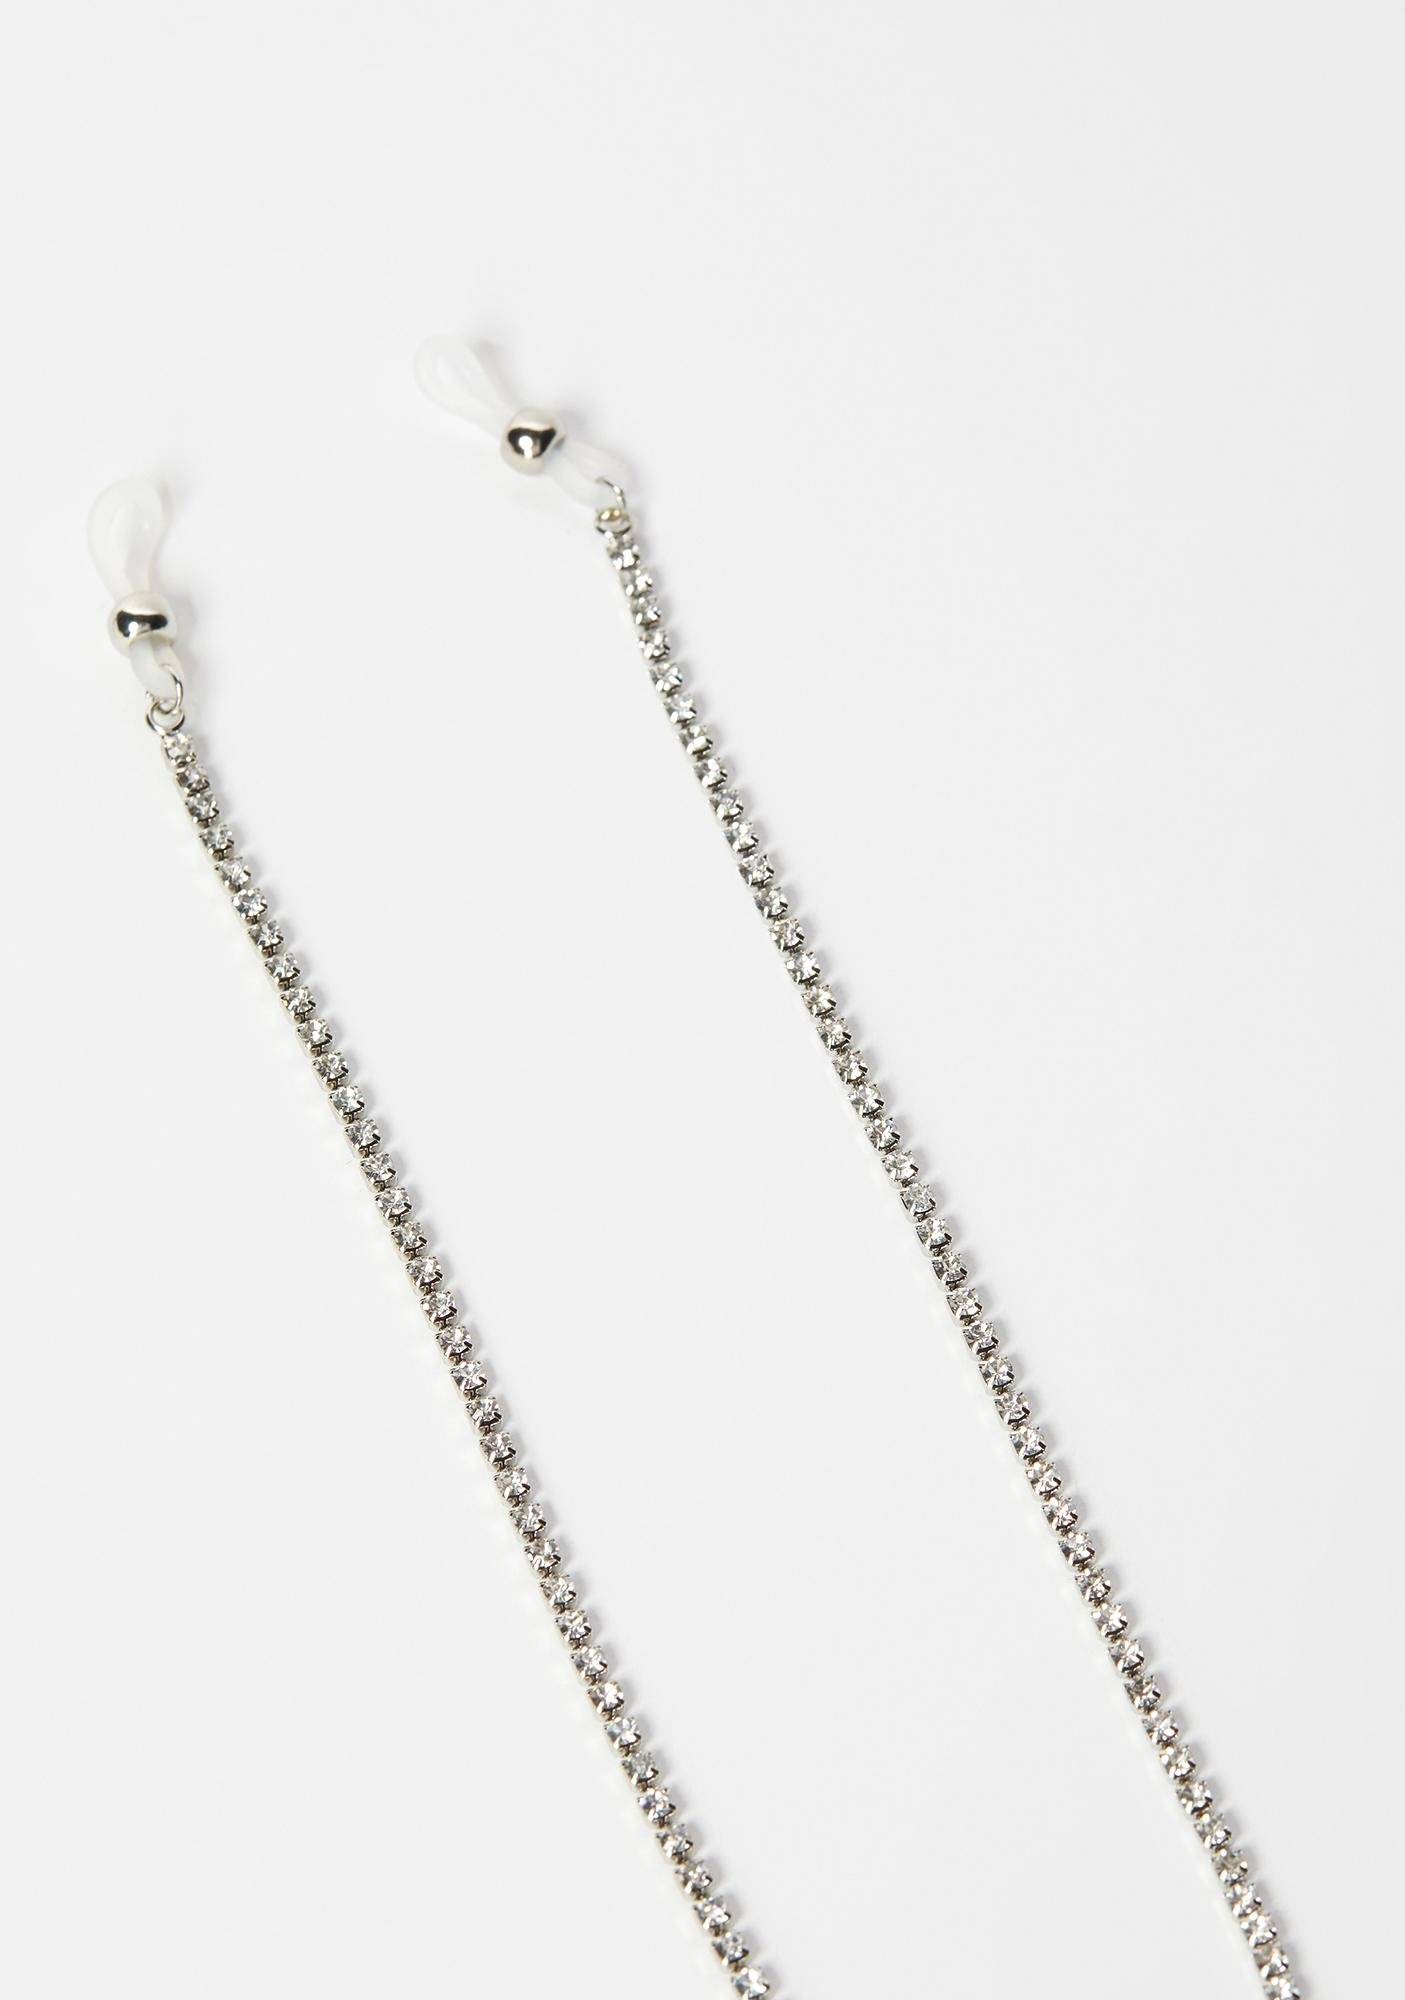 Silver Hang Low Sunglasses Chain